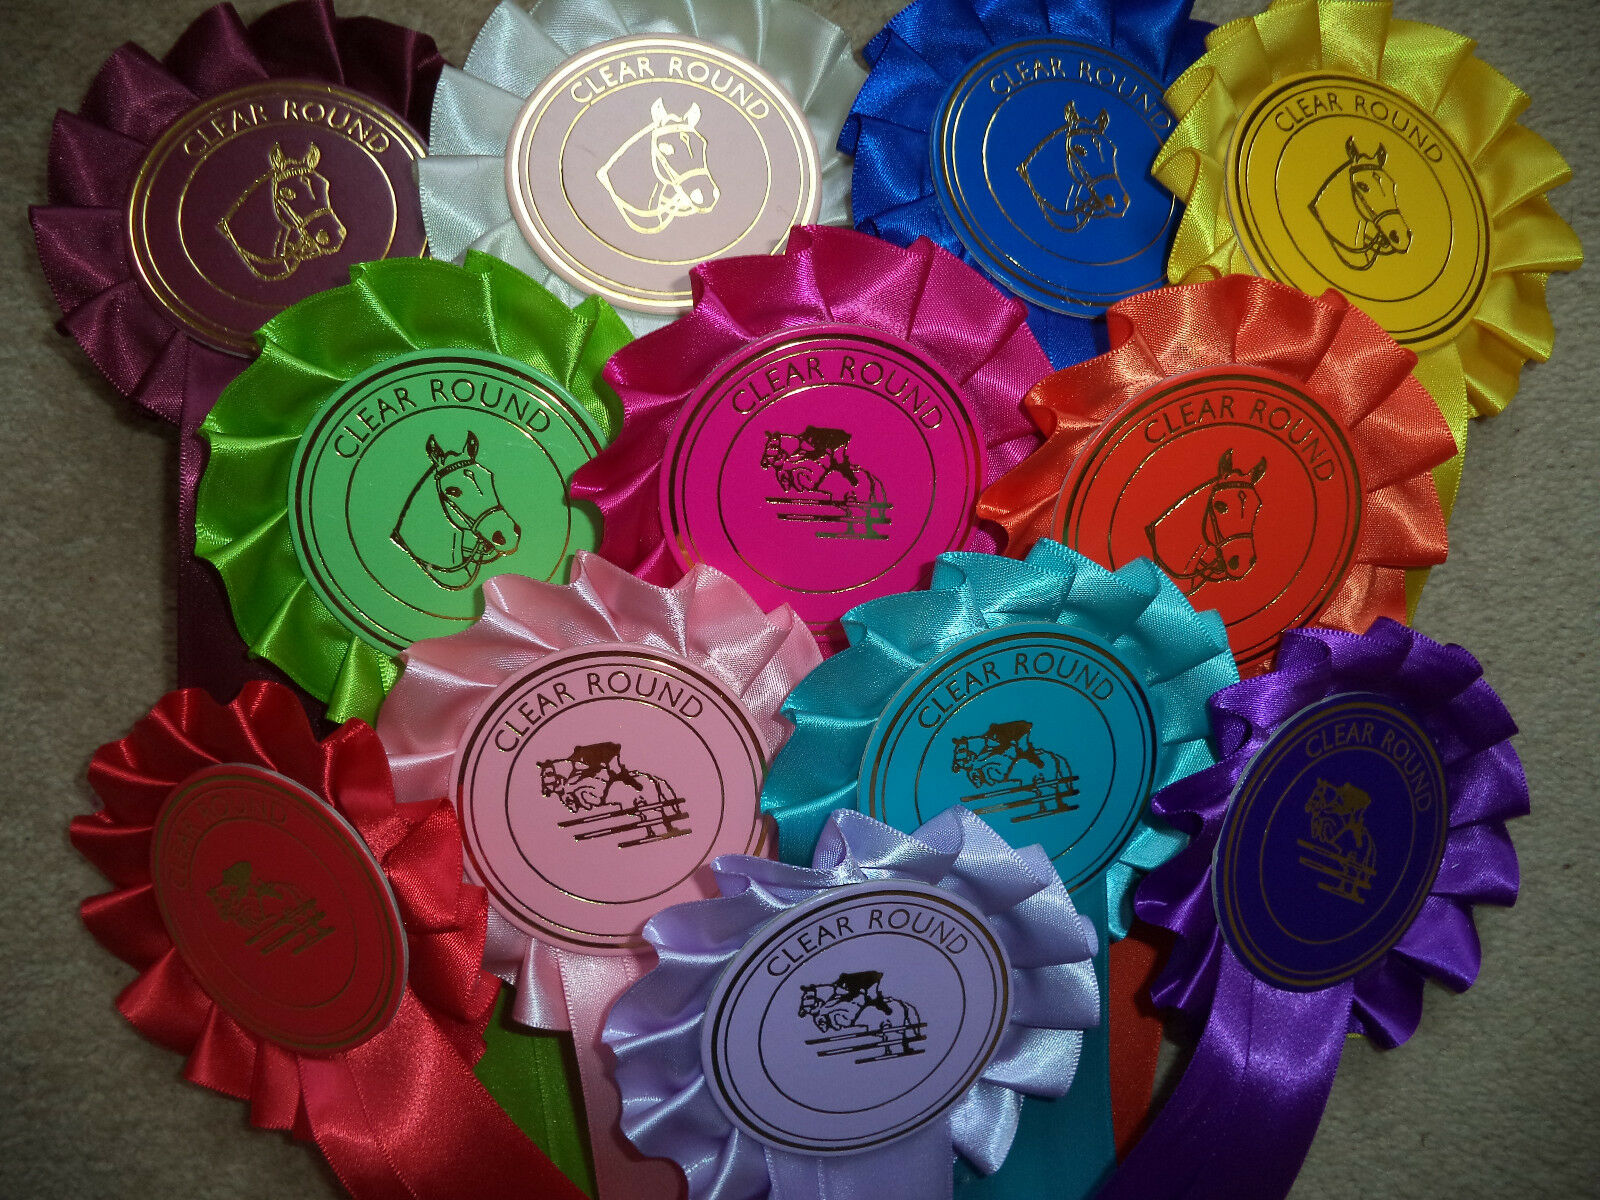 Clear Round pinkttes 50 x 1 Tier  mixed colours